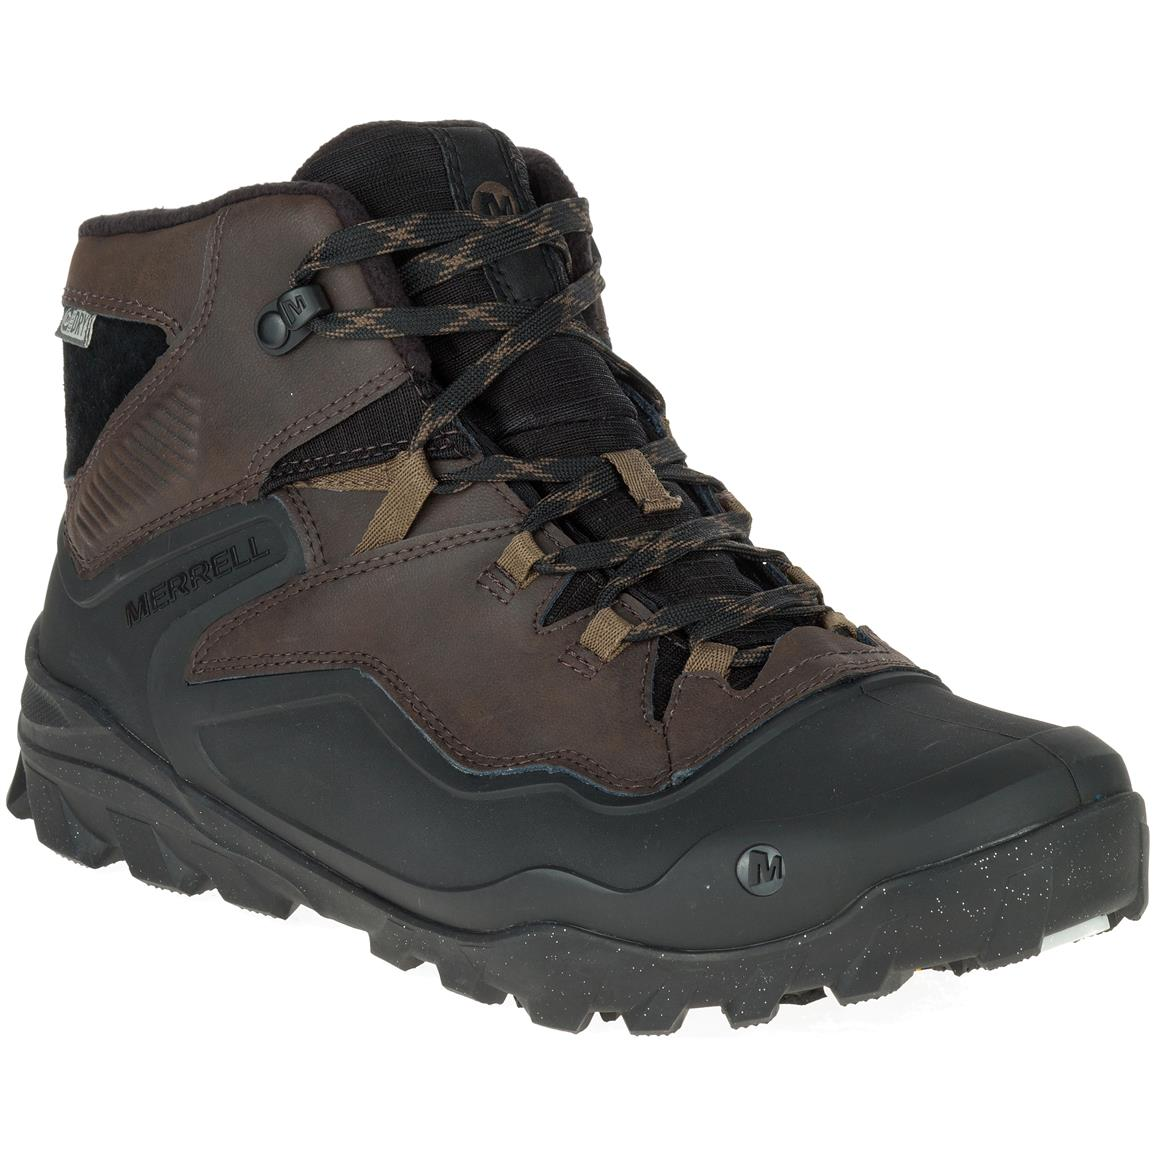 Merrell Men's Overlook 6 Ice+Waterproof Hiking Boots, 200 Gram Insulation, Espresso